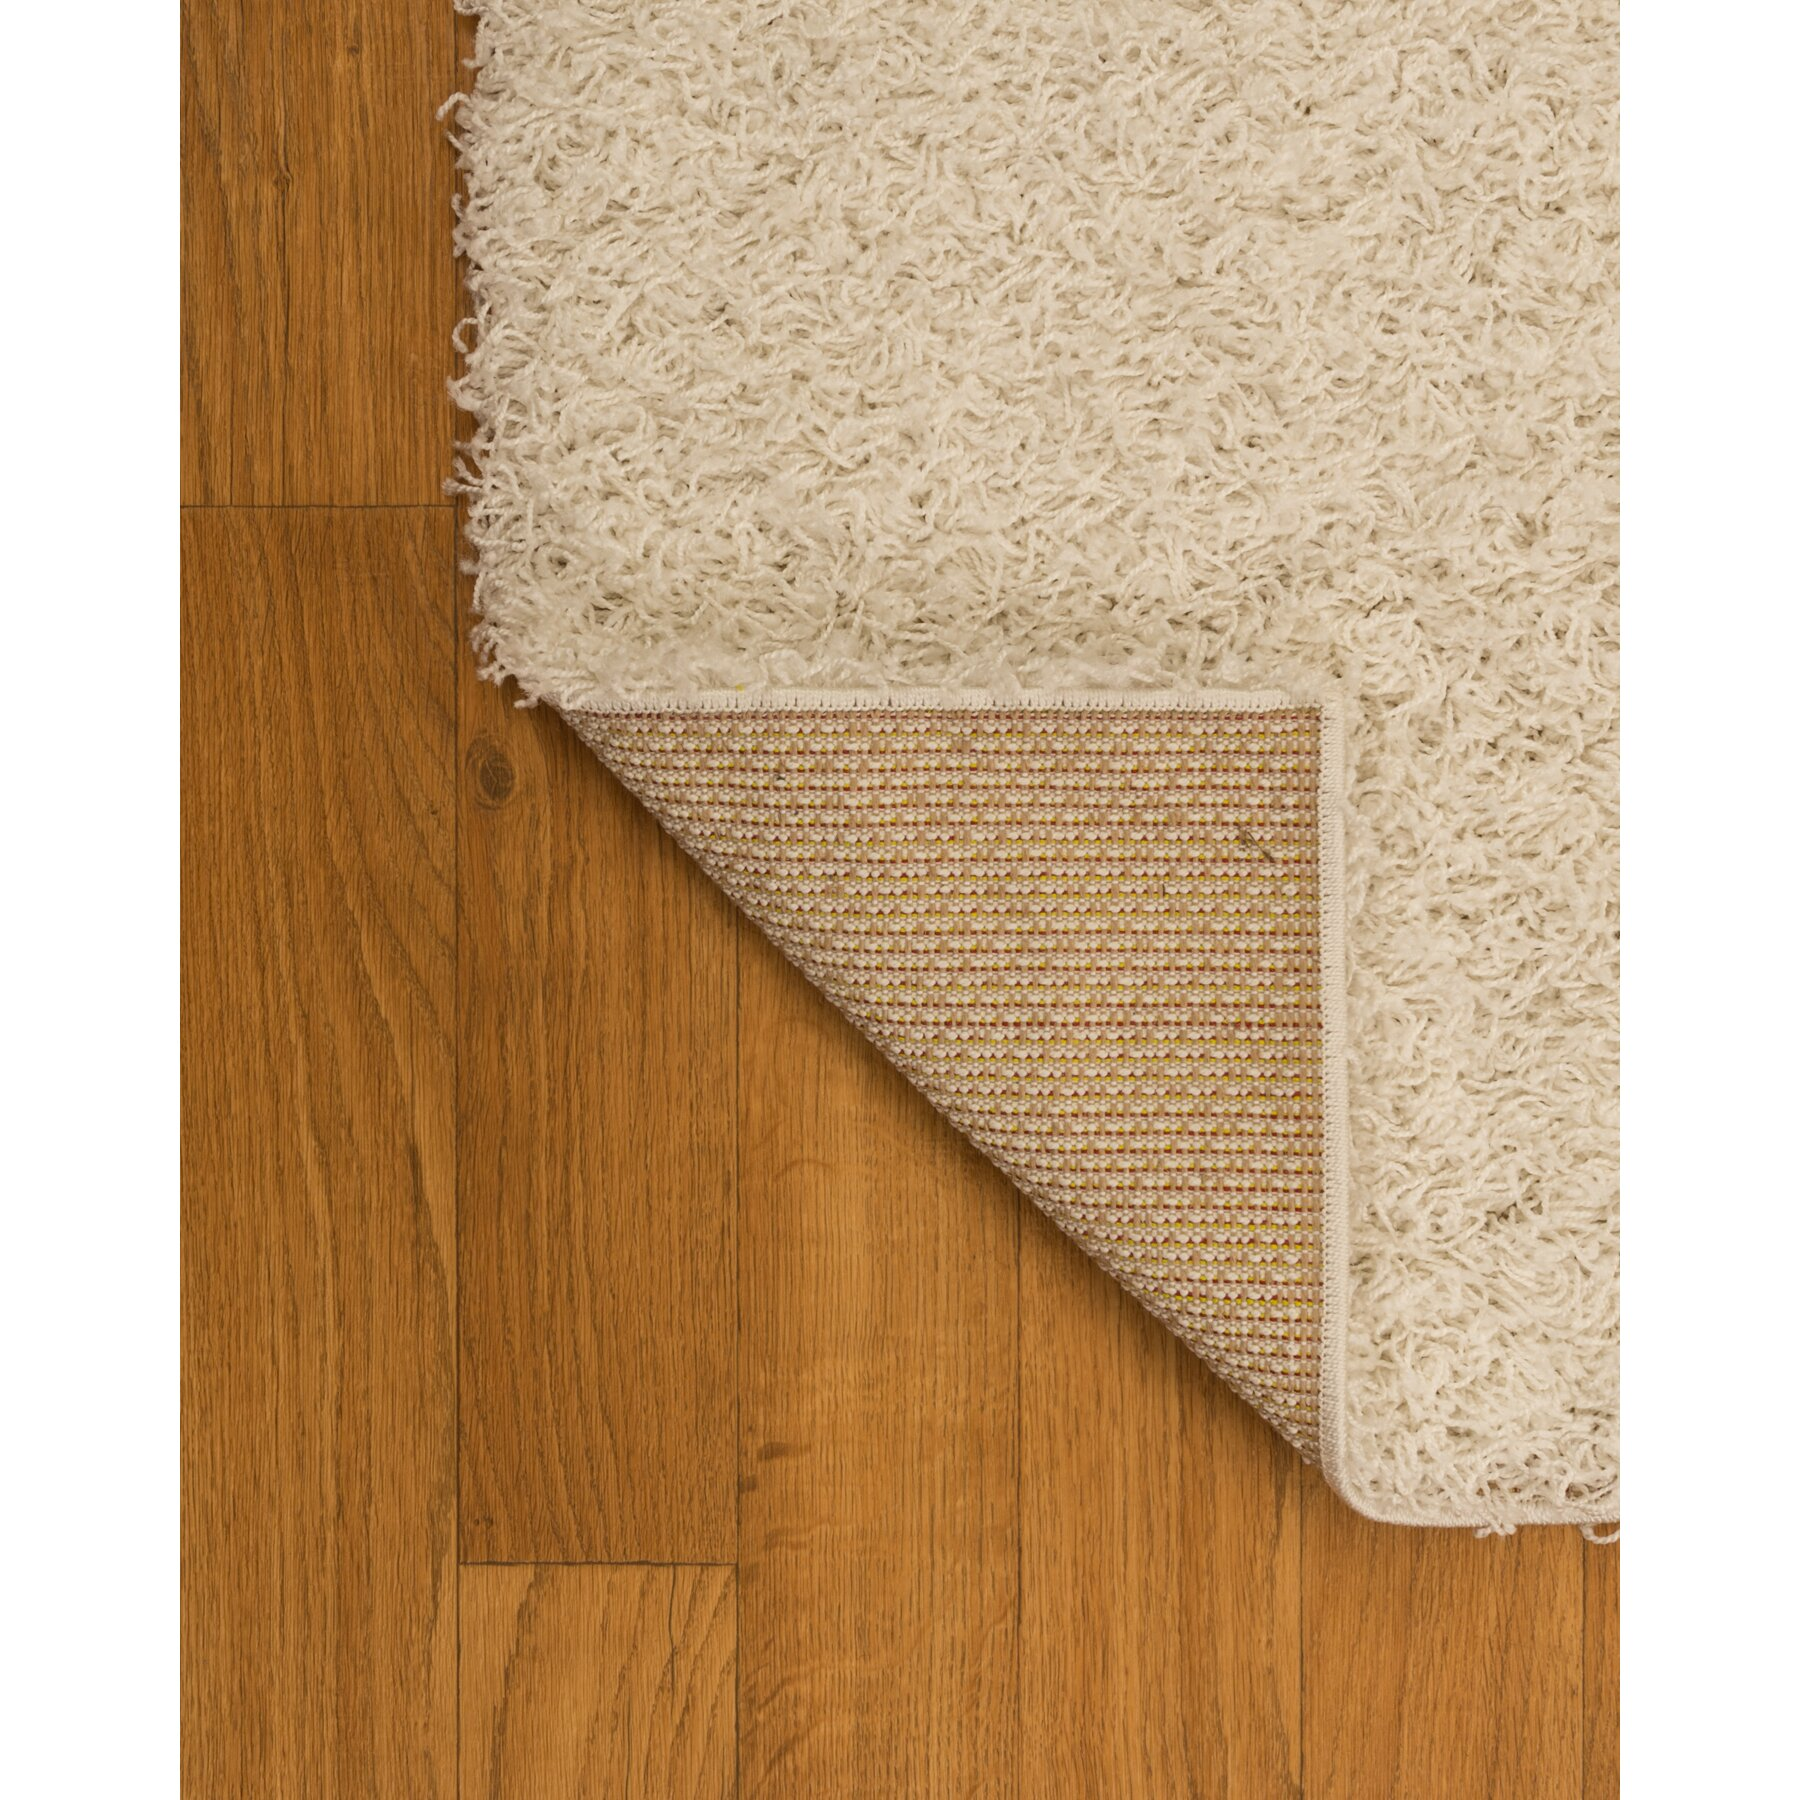 Natural area rugs isla ivory area rug wayfair for Accent rug vs area rug